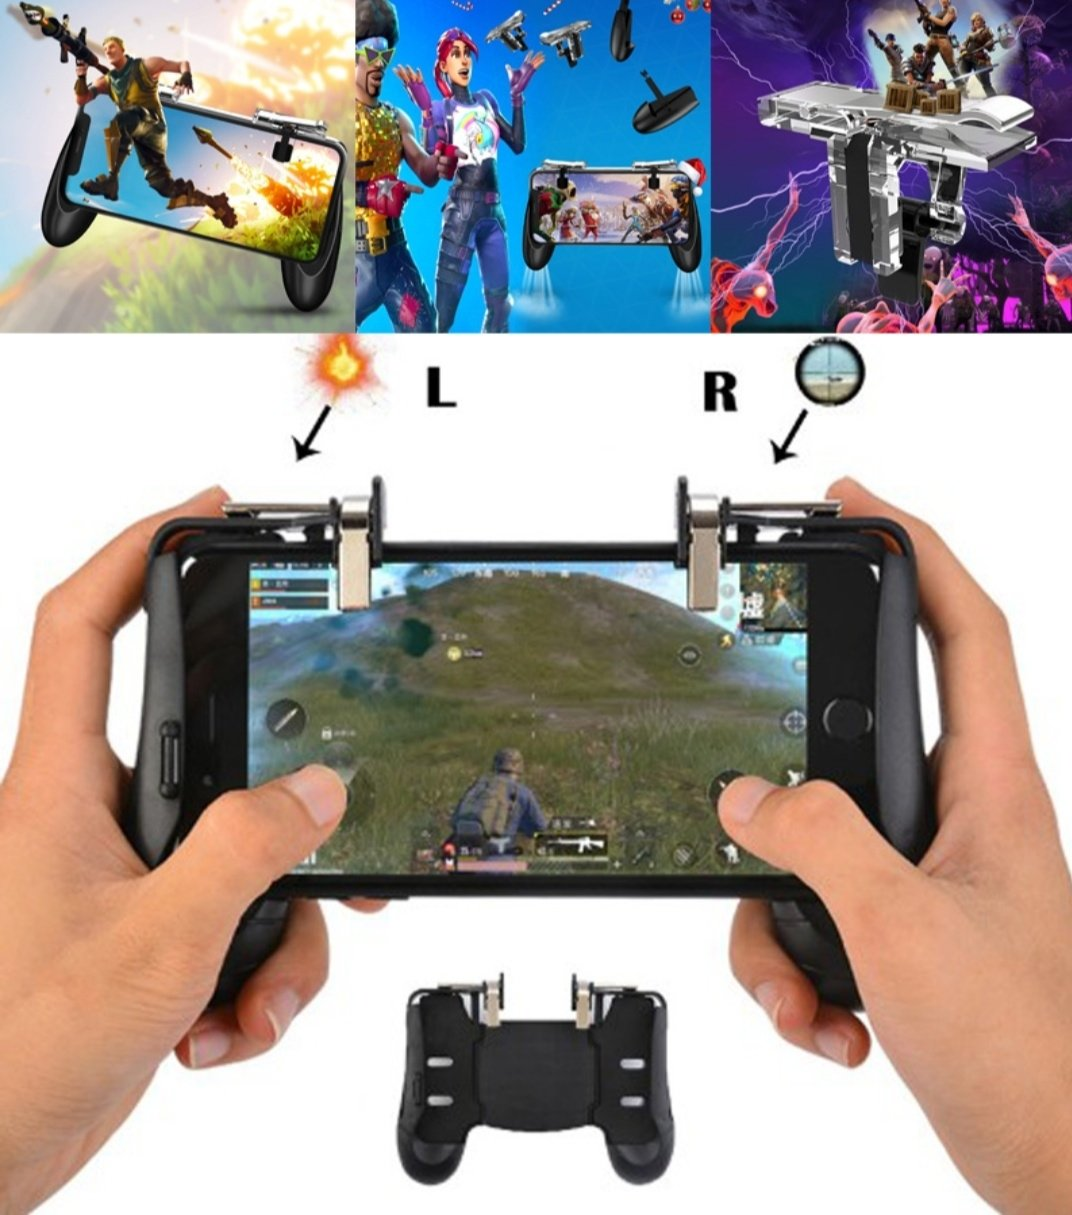 Pubg Game Gamepad For Mobile Phone Trigger Fire Aim Key Shooter Fire Button -🎮 LHX-A03